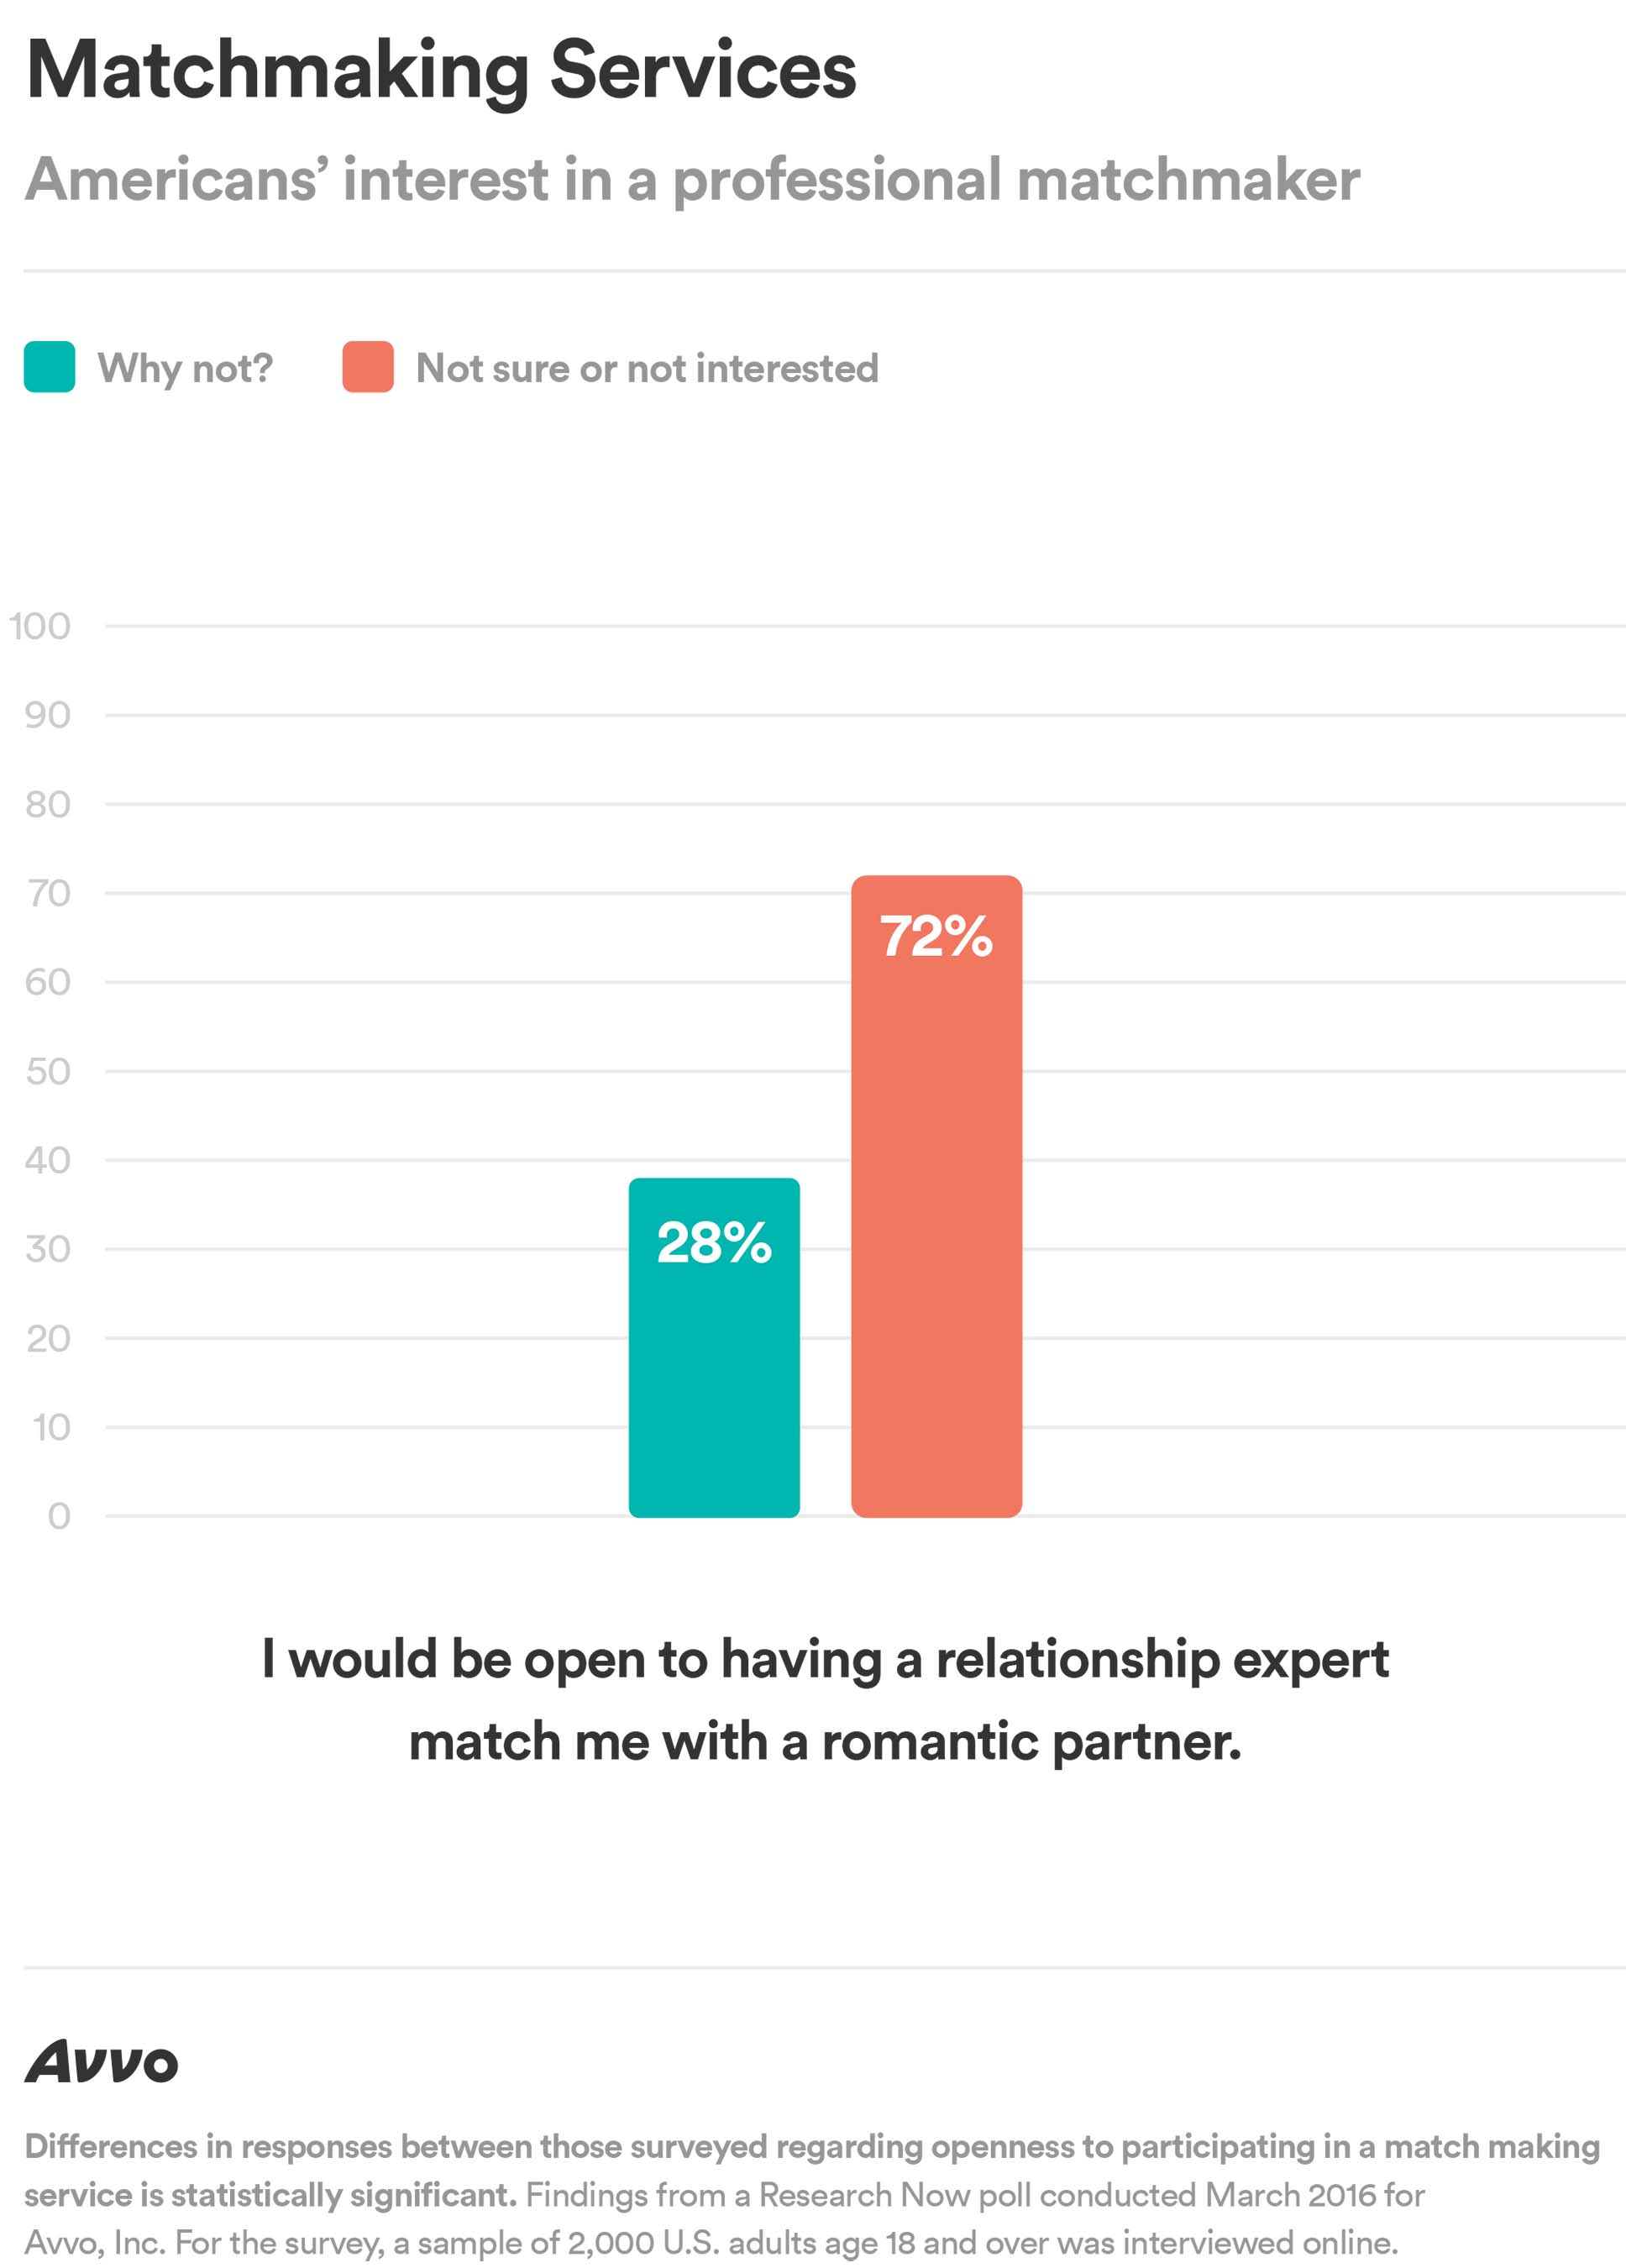 Americans' Interest in Matchmaking Services